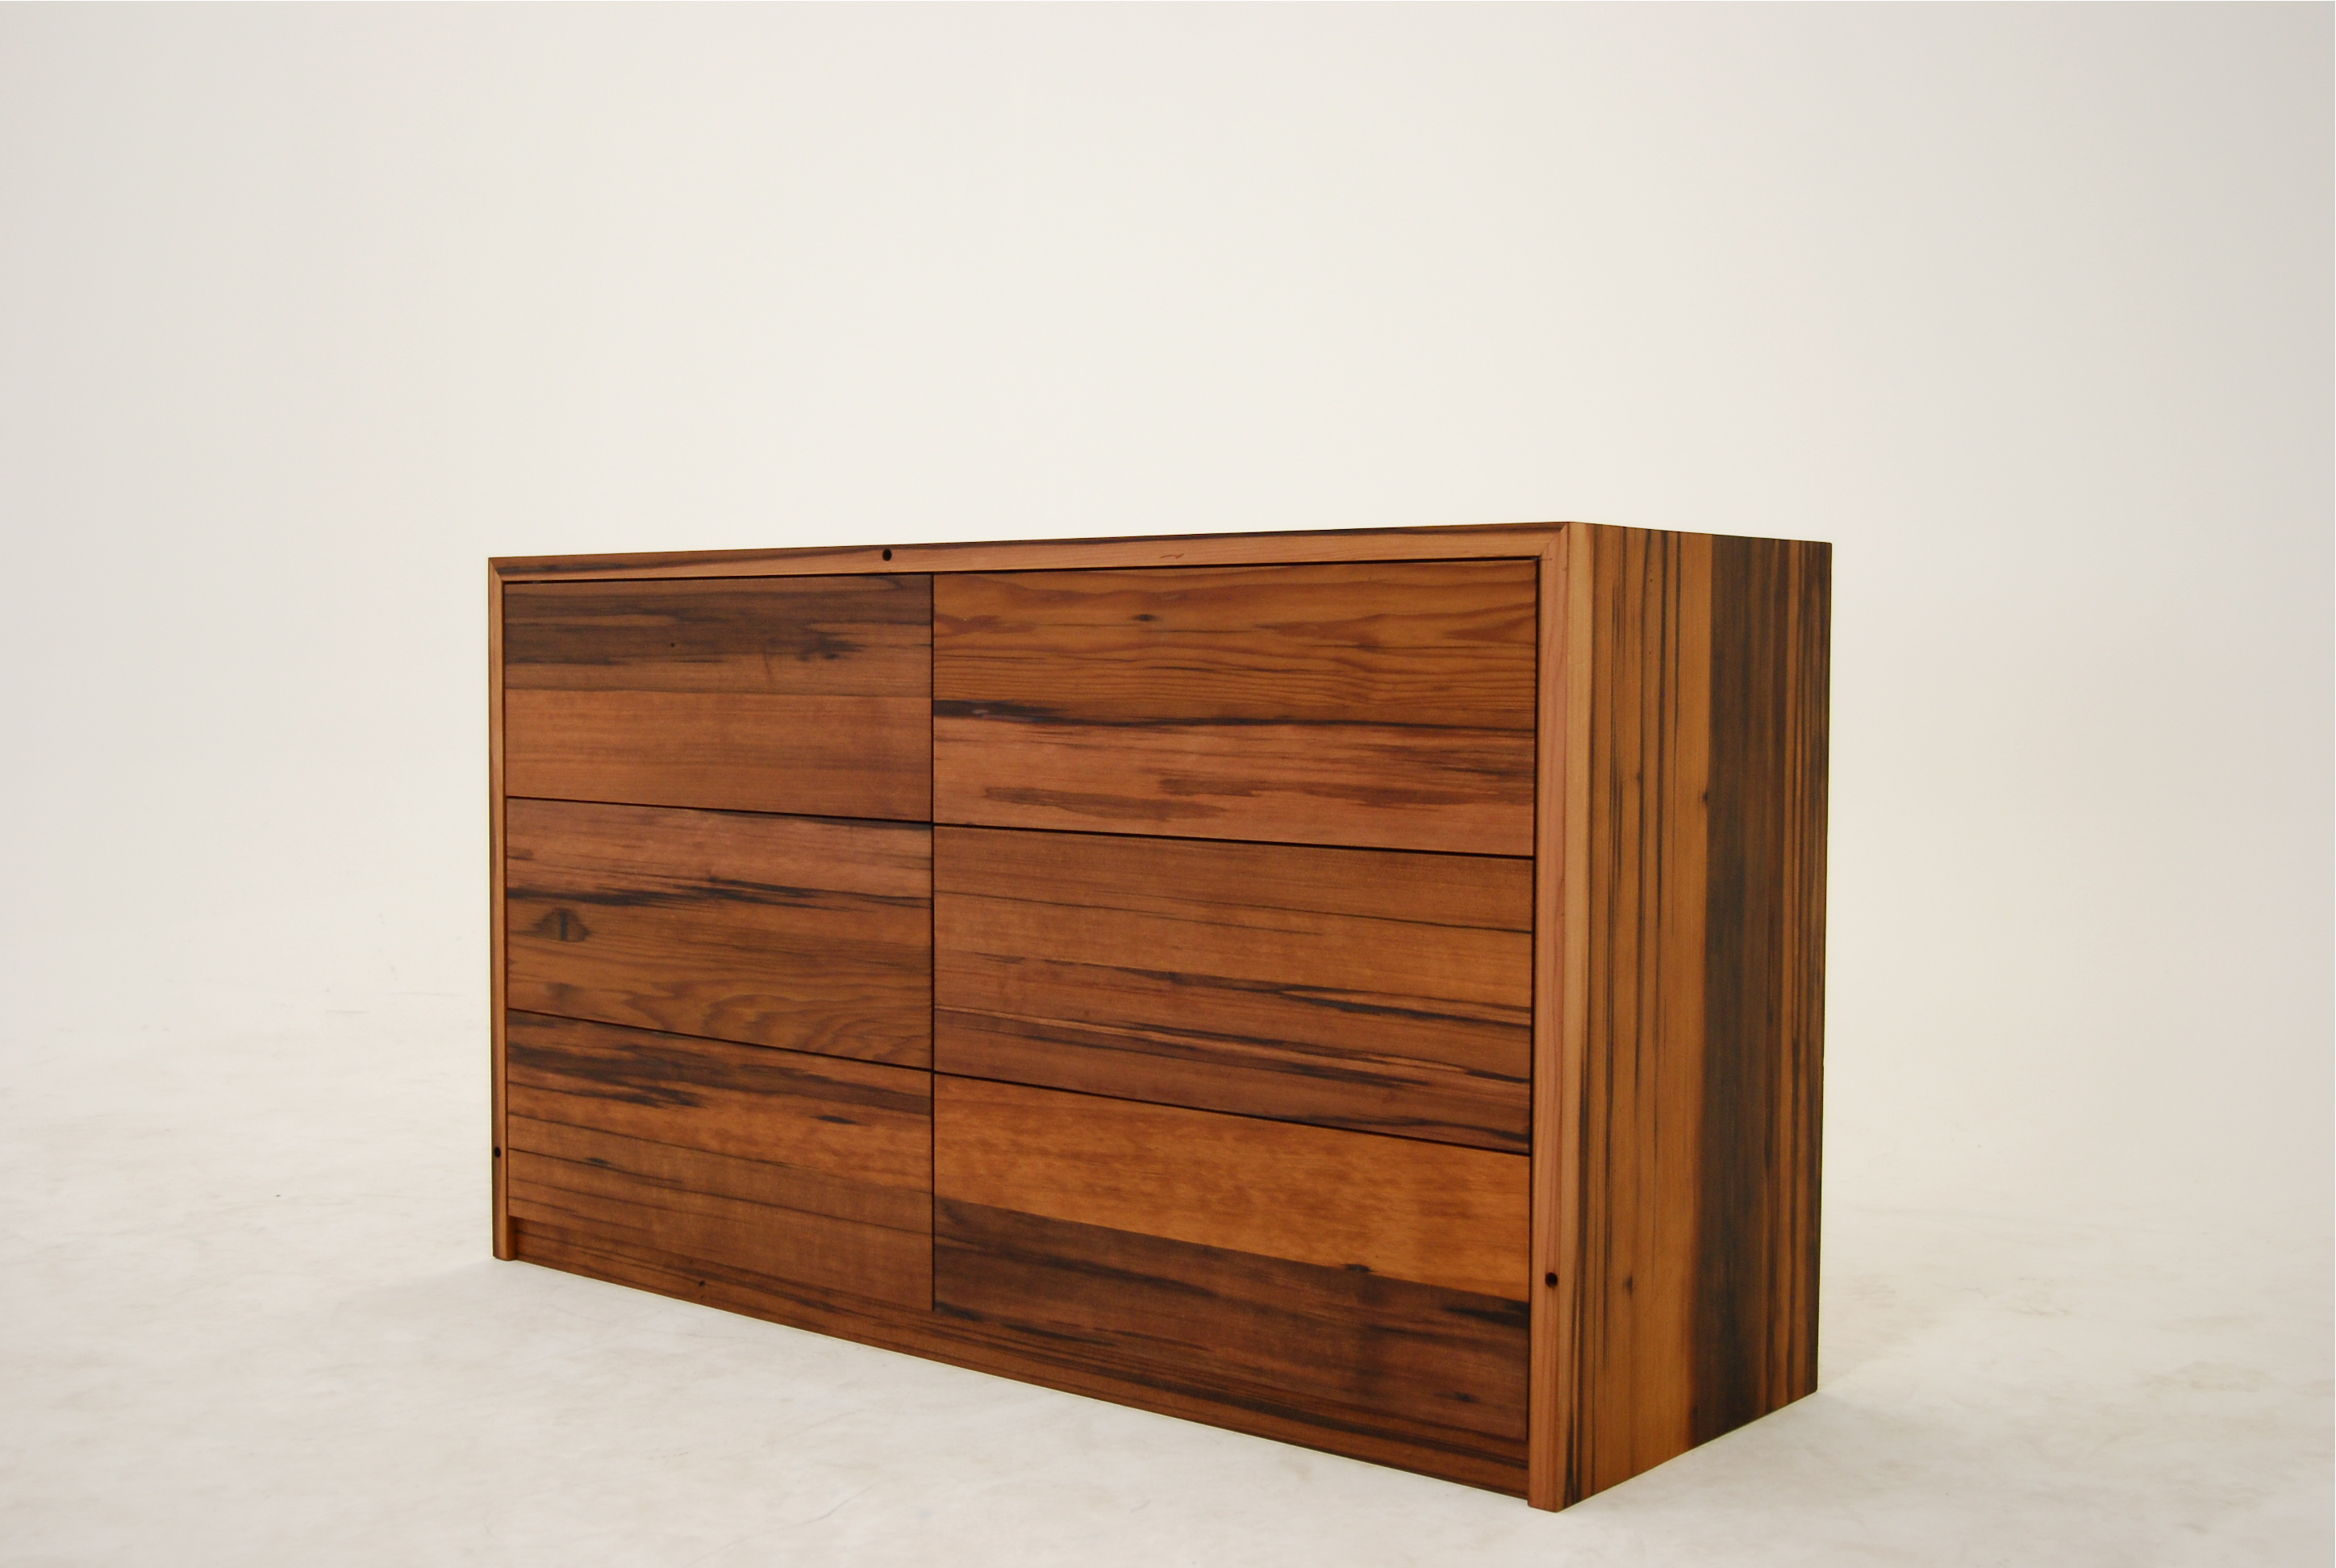 This Low, Wide Chest Adds To My Series Of Reclaimed Redwood Bedroom  Furniture. The Salvaged Material Is Distinct For The Dark Streaks That Run  Through Its ...